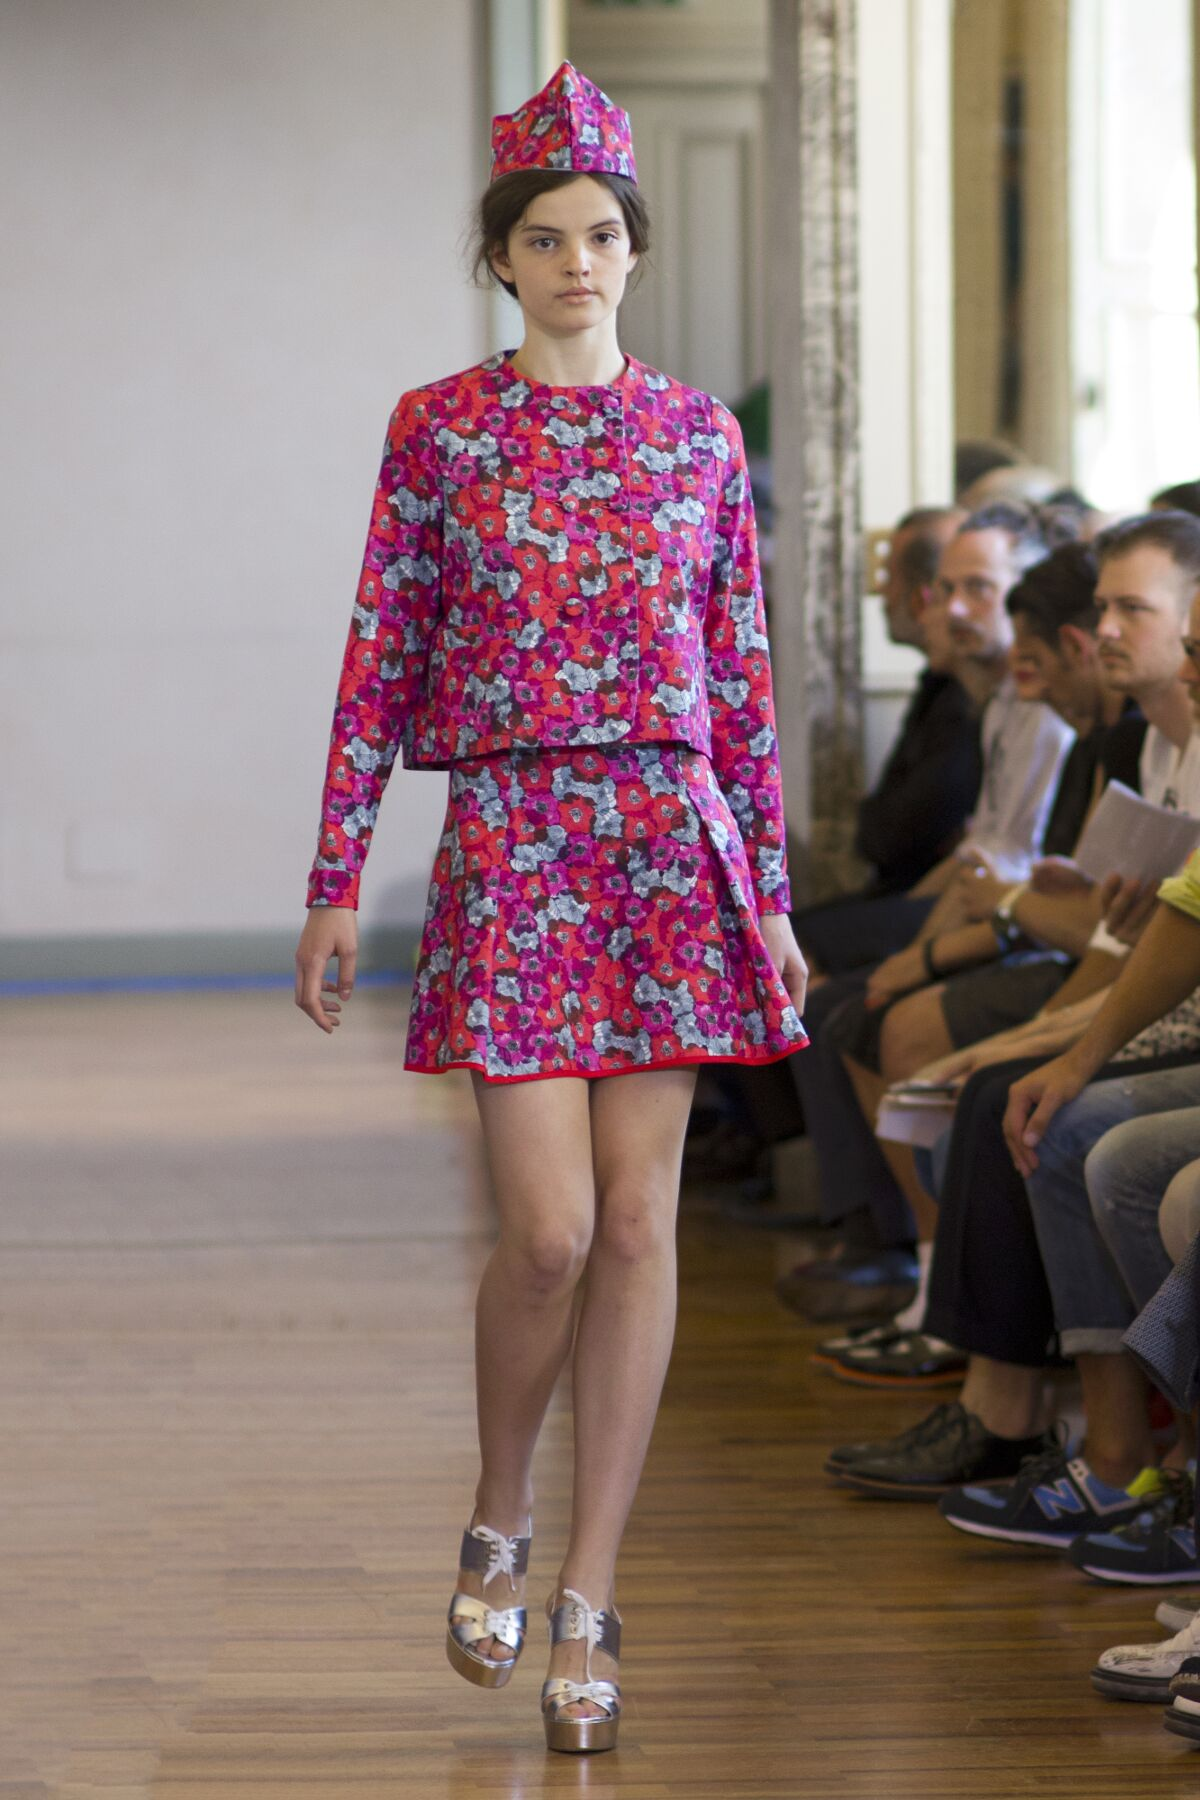 Andrea Incontri Summer 2014 Catwalk